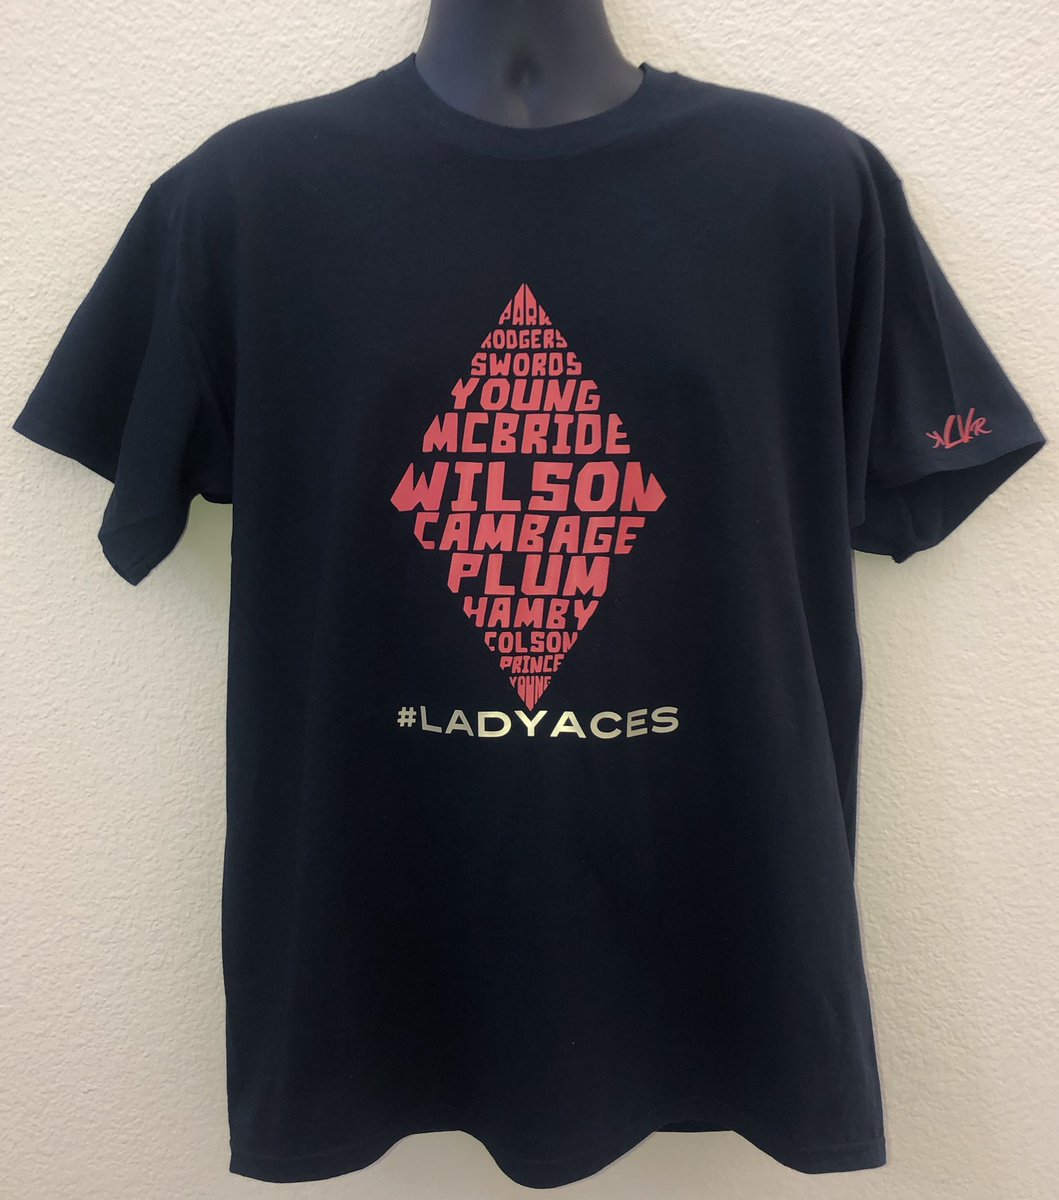 Lady Aces Diamond ♦️  Game Day Delivery 📦  Available at: https://etsy.me/316LvPn   #lvaces #DoubleDown #ALLIN  #WNBAPlayoffs #WNBA